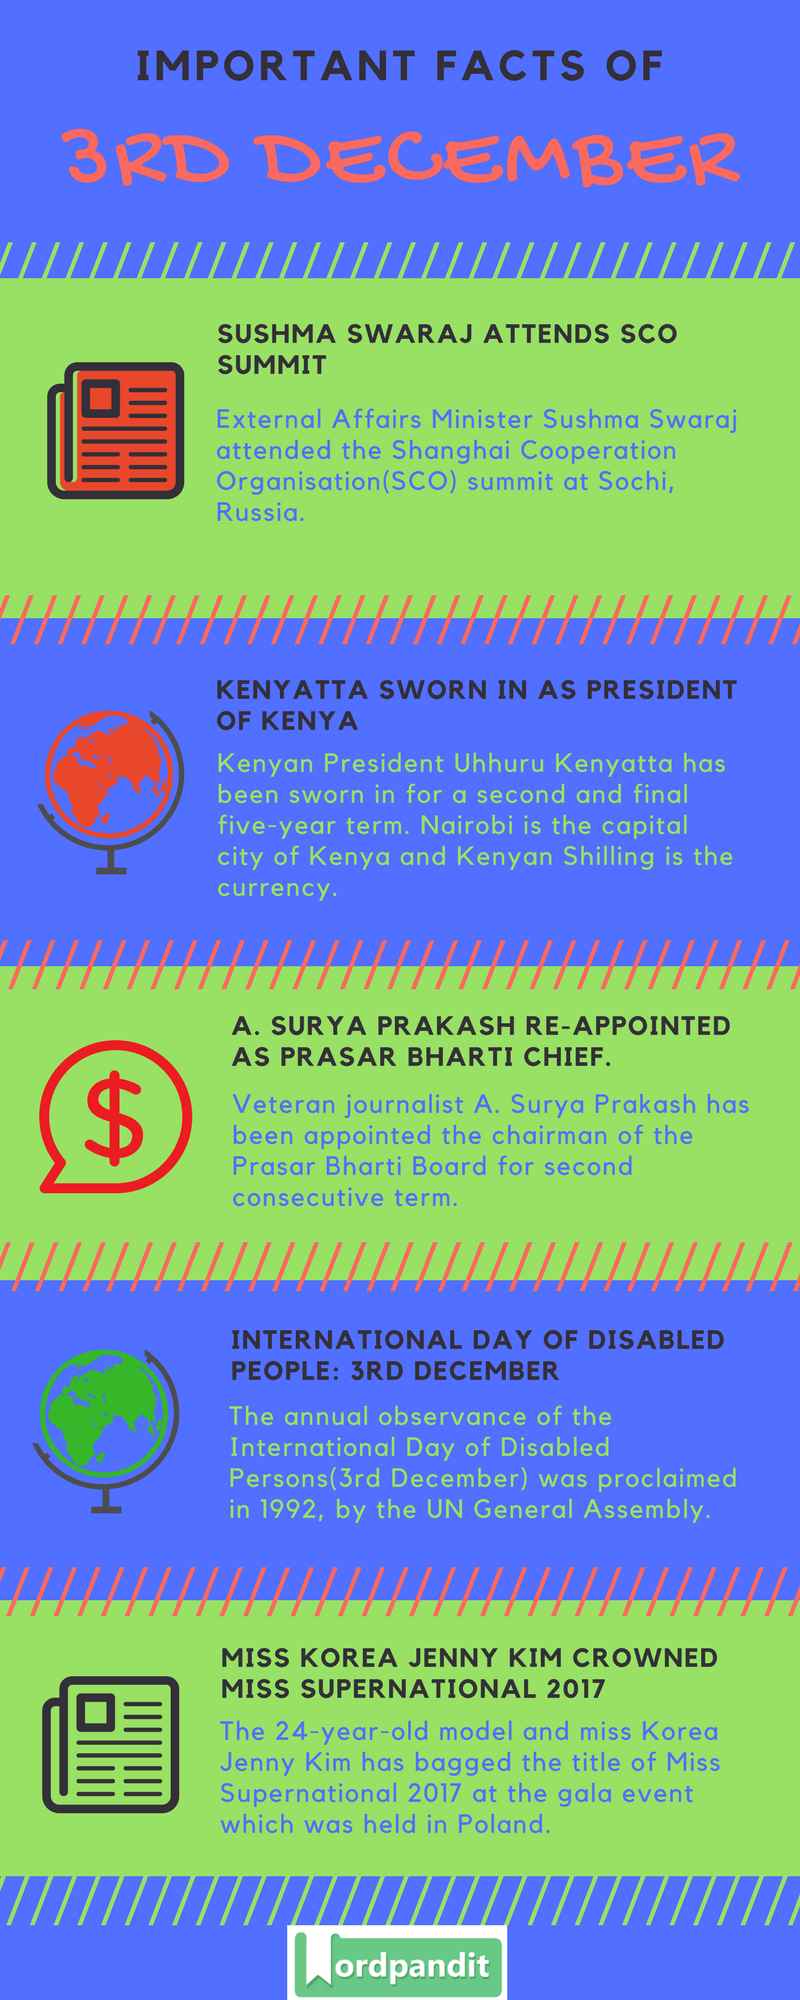 Daily-Current-Affairs-3-december-2017-Current-Affairs-Quiz-december-3-2017-Current-Affairs-Infographic